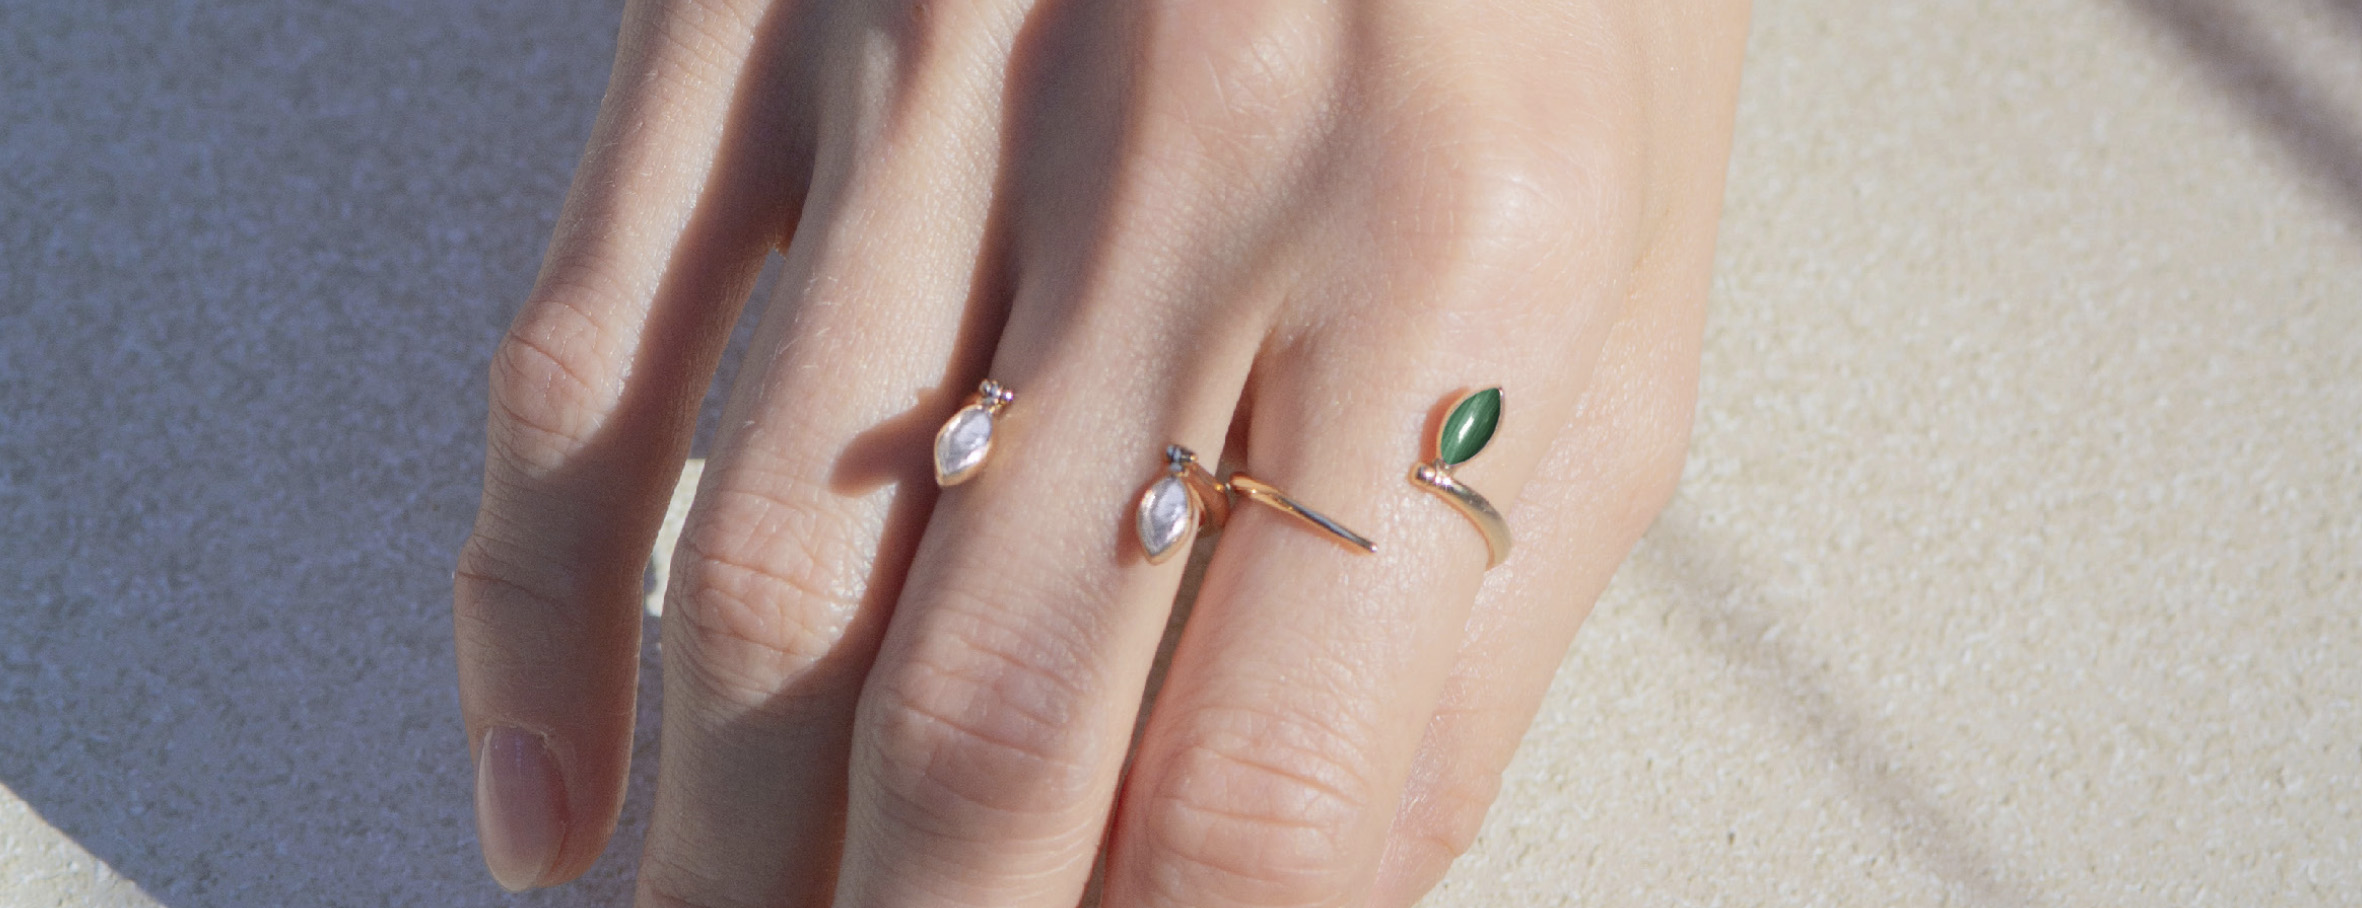 Marie Mas Summer Swinging Stones jewellery collection in 18ct rose gold set with mother of pearl and malachite